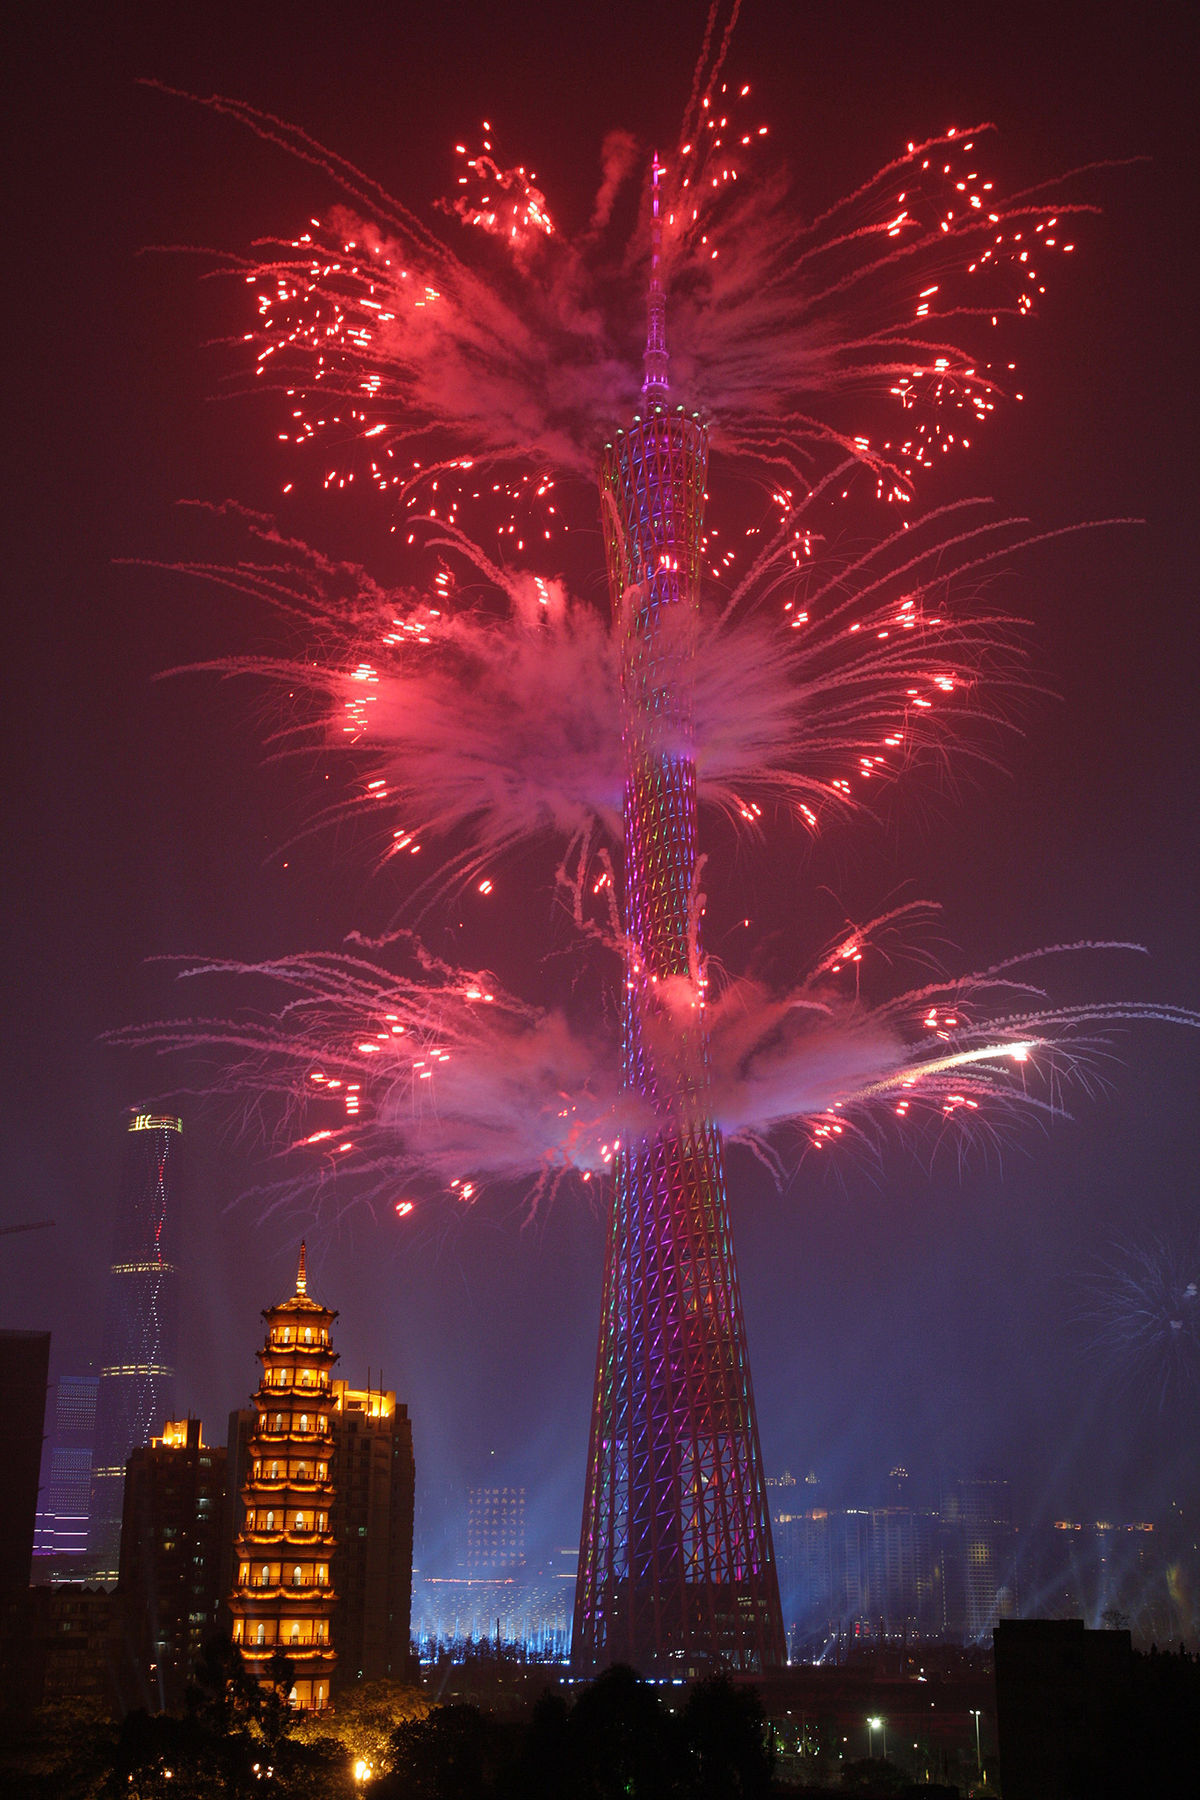 2010 Asian Games Opening Ceremony Wikipedia